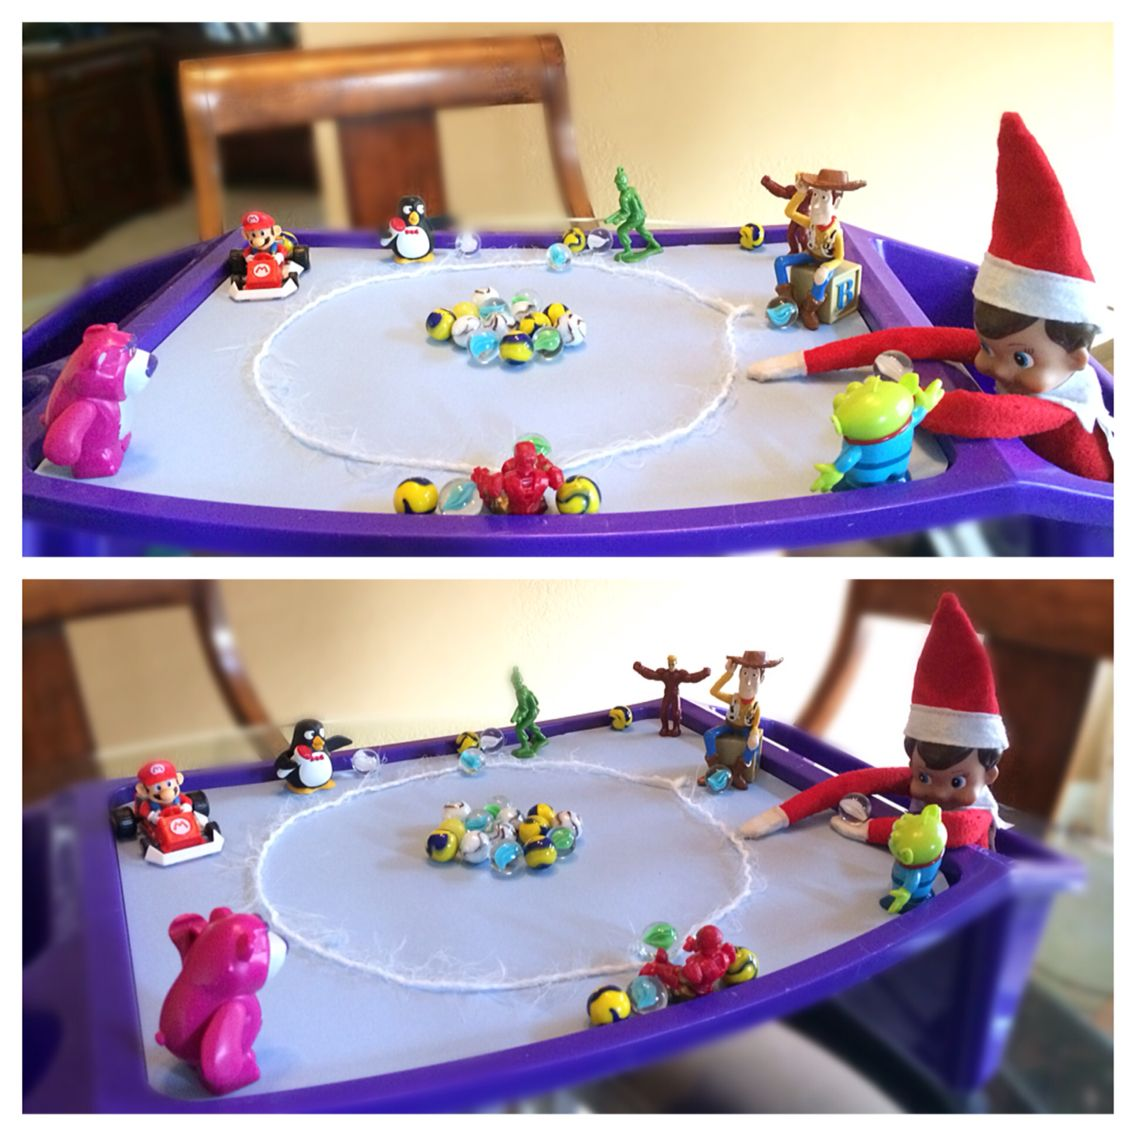 Tommy The Elf Plays A Game Of Marbles With Some Playroom Friends Elfontheshelf Marbles The Elf Playroom Holiday